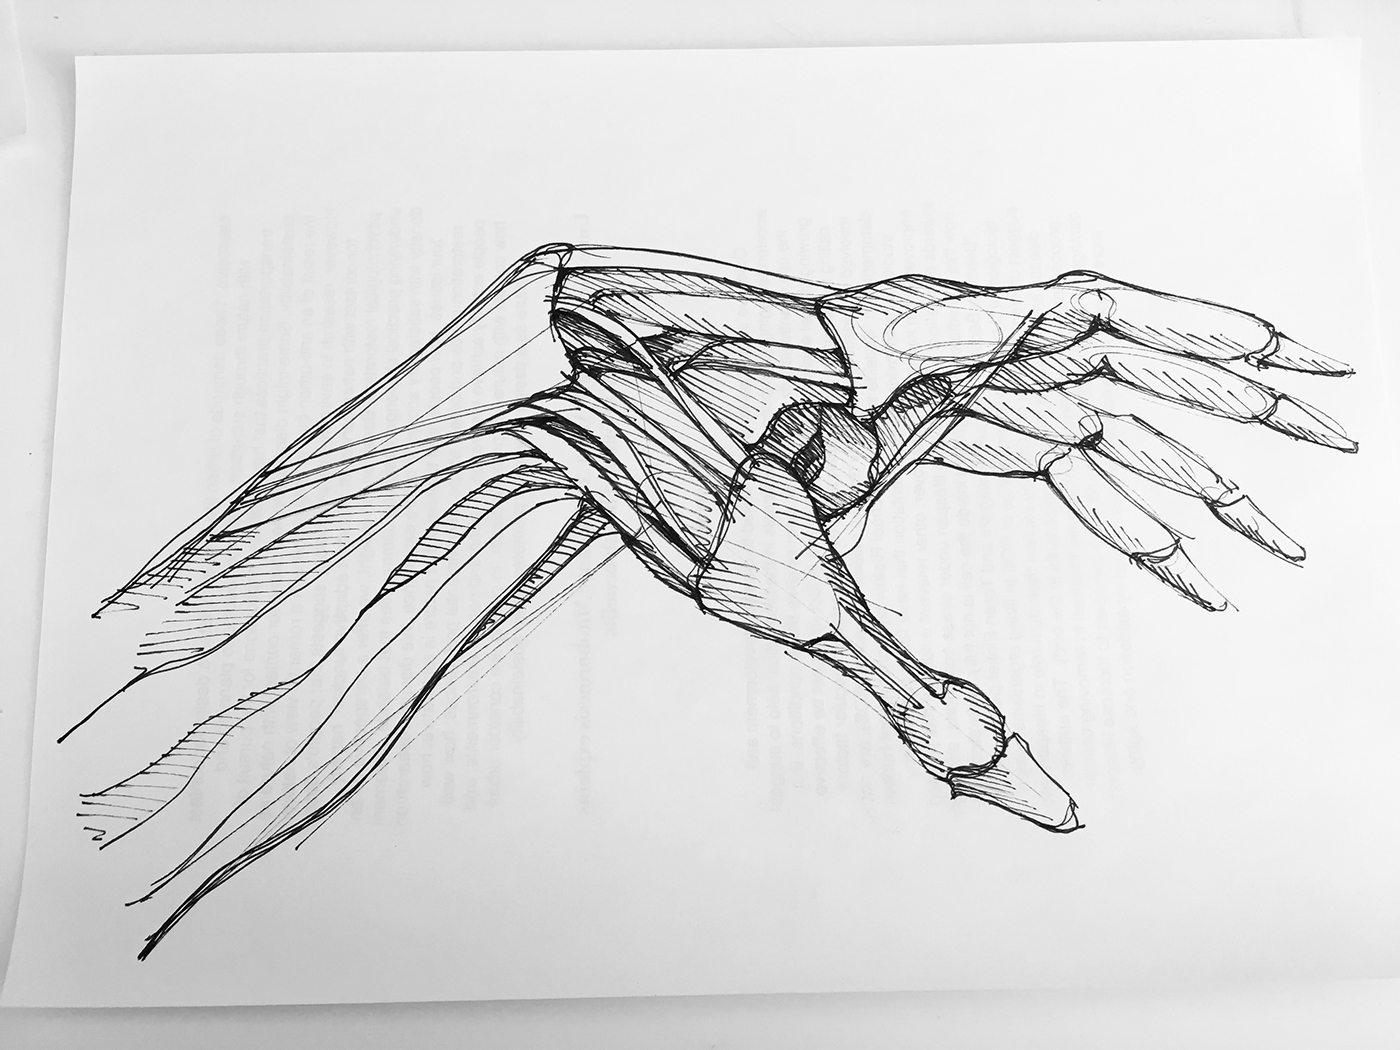 Human Anatomy Sketches On Student Show